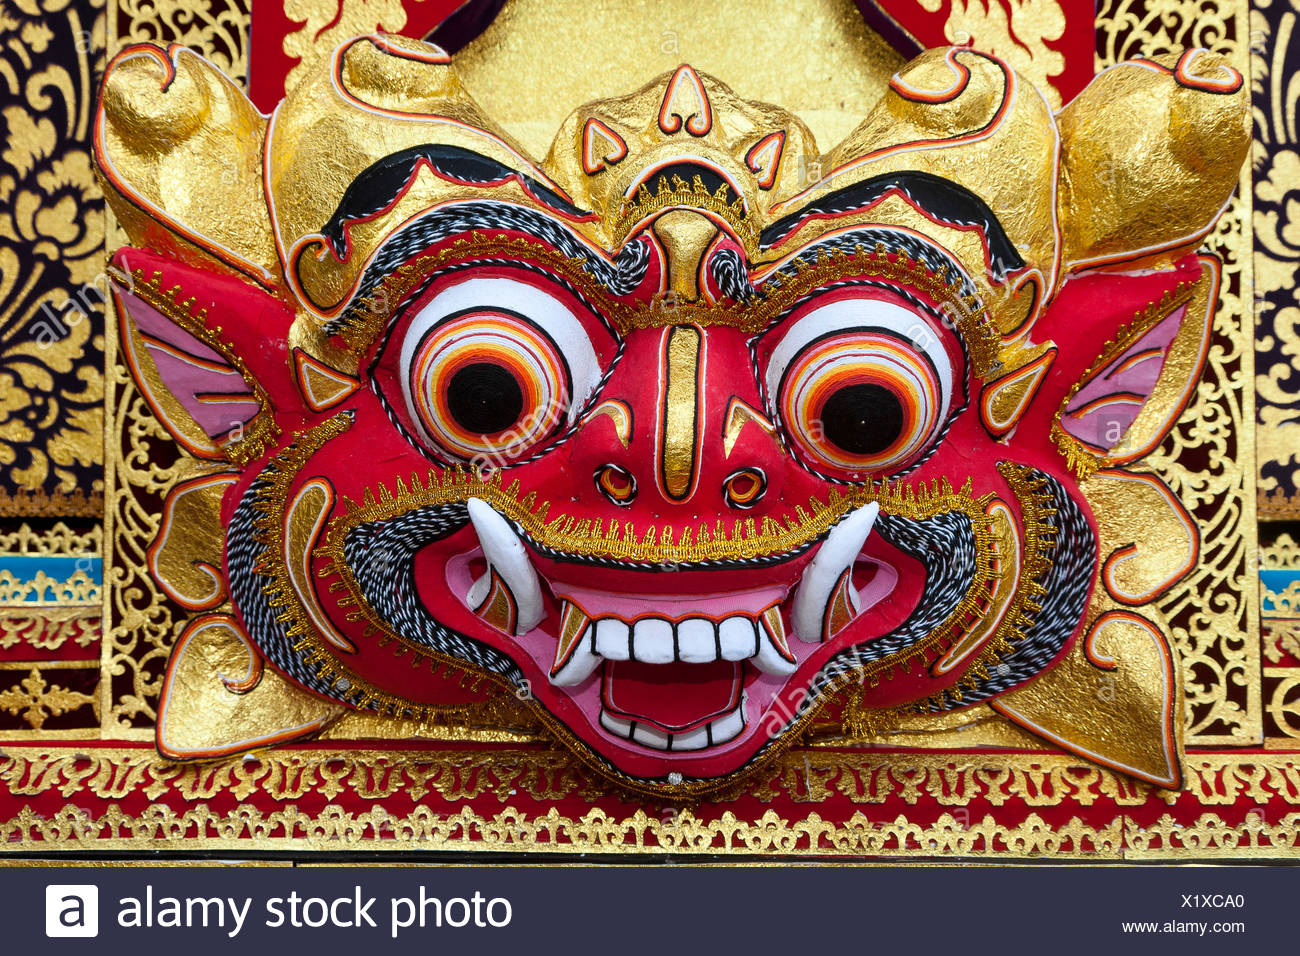 Colorful mask, demon, Ubud, central Bali, Indonesia, Southeast Asia - Stock Image